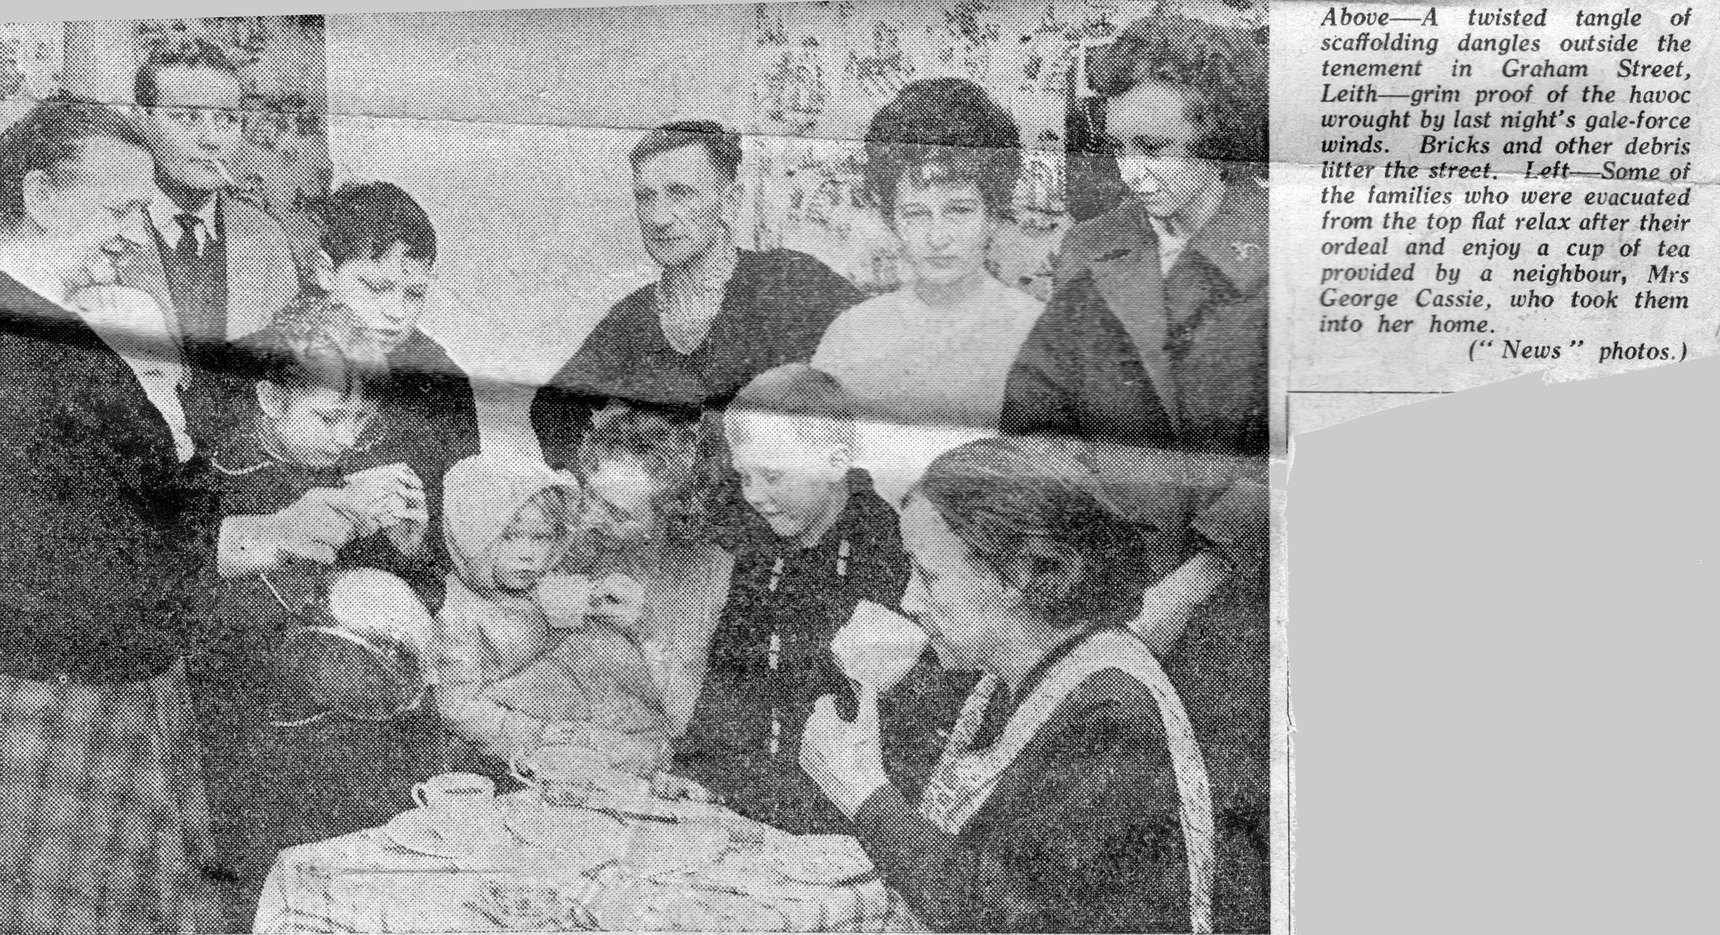 Newspaper Cutting Family Affected By Collapse Of Scaffolding In Graham Street 1960s